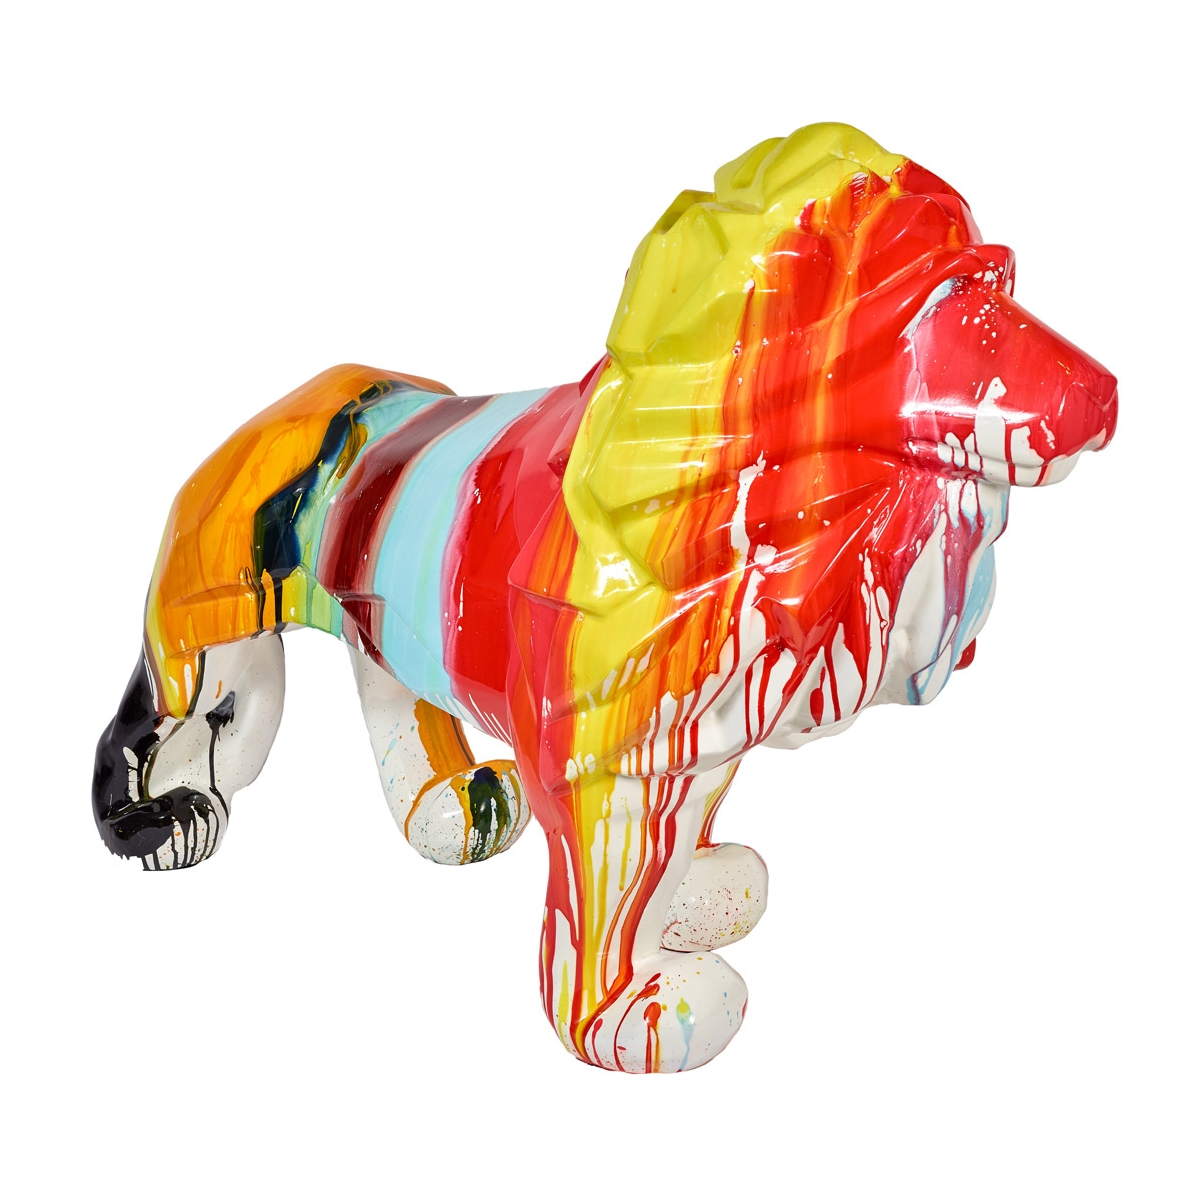 Statue lion design zendart design s lection zendart design for Objet de decoration interieur design